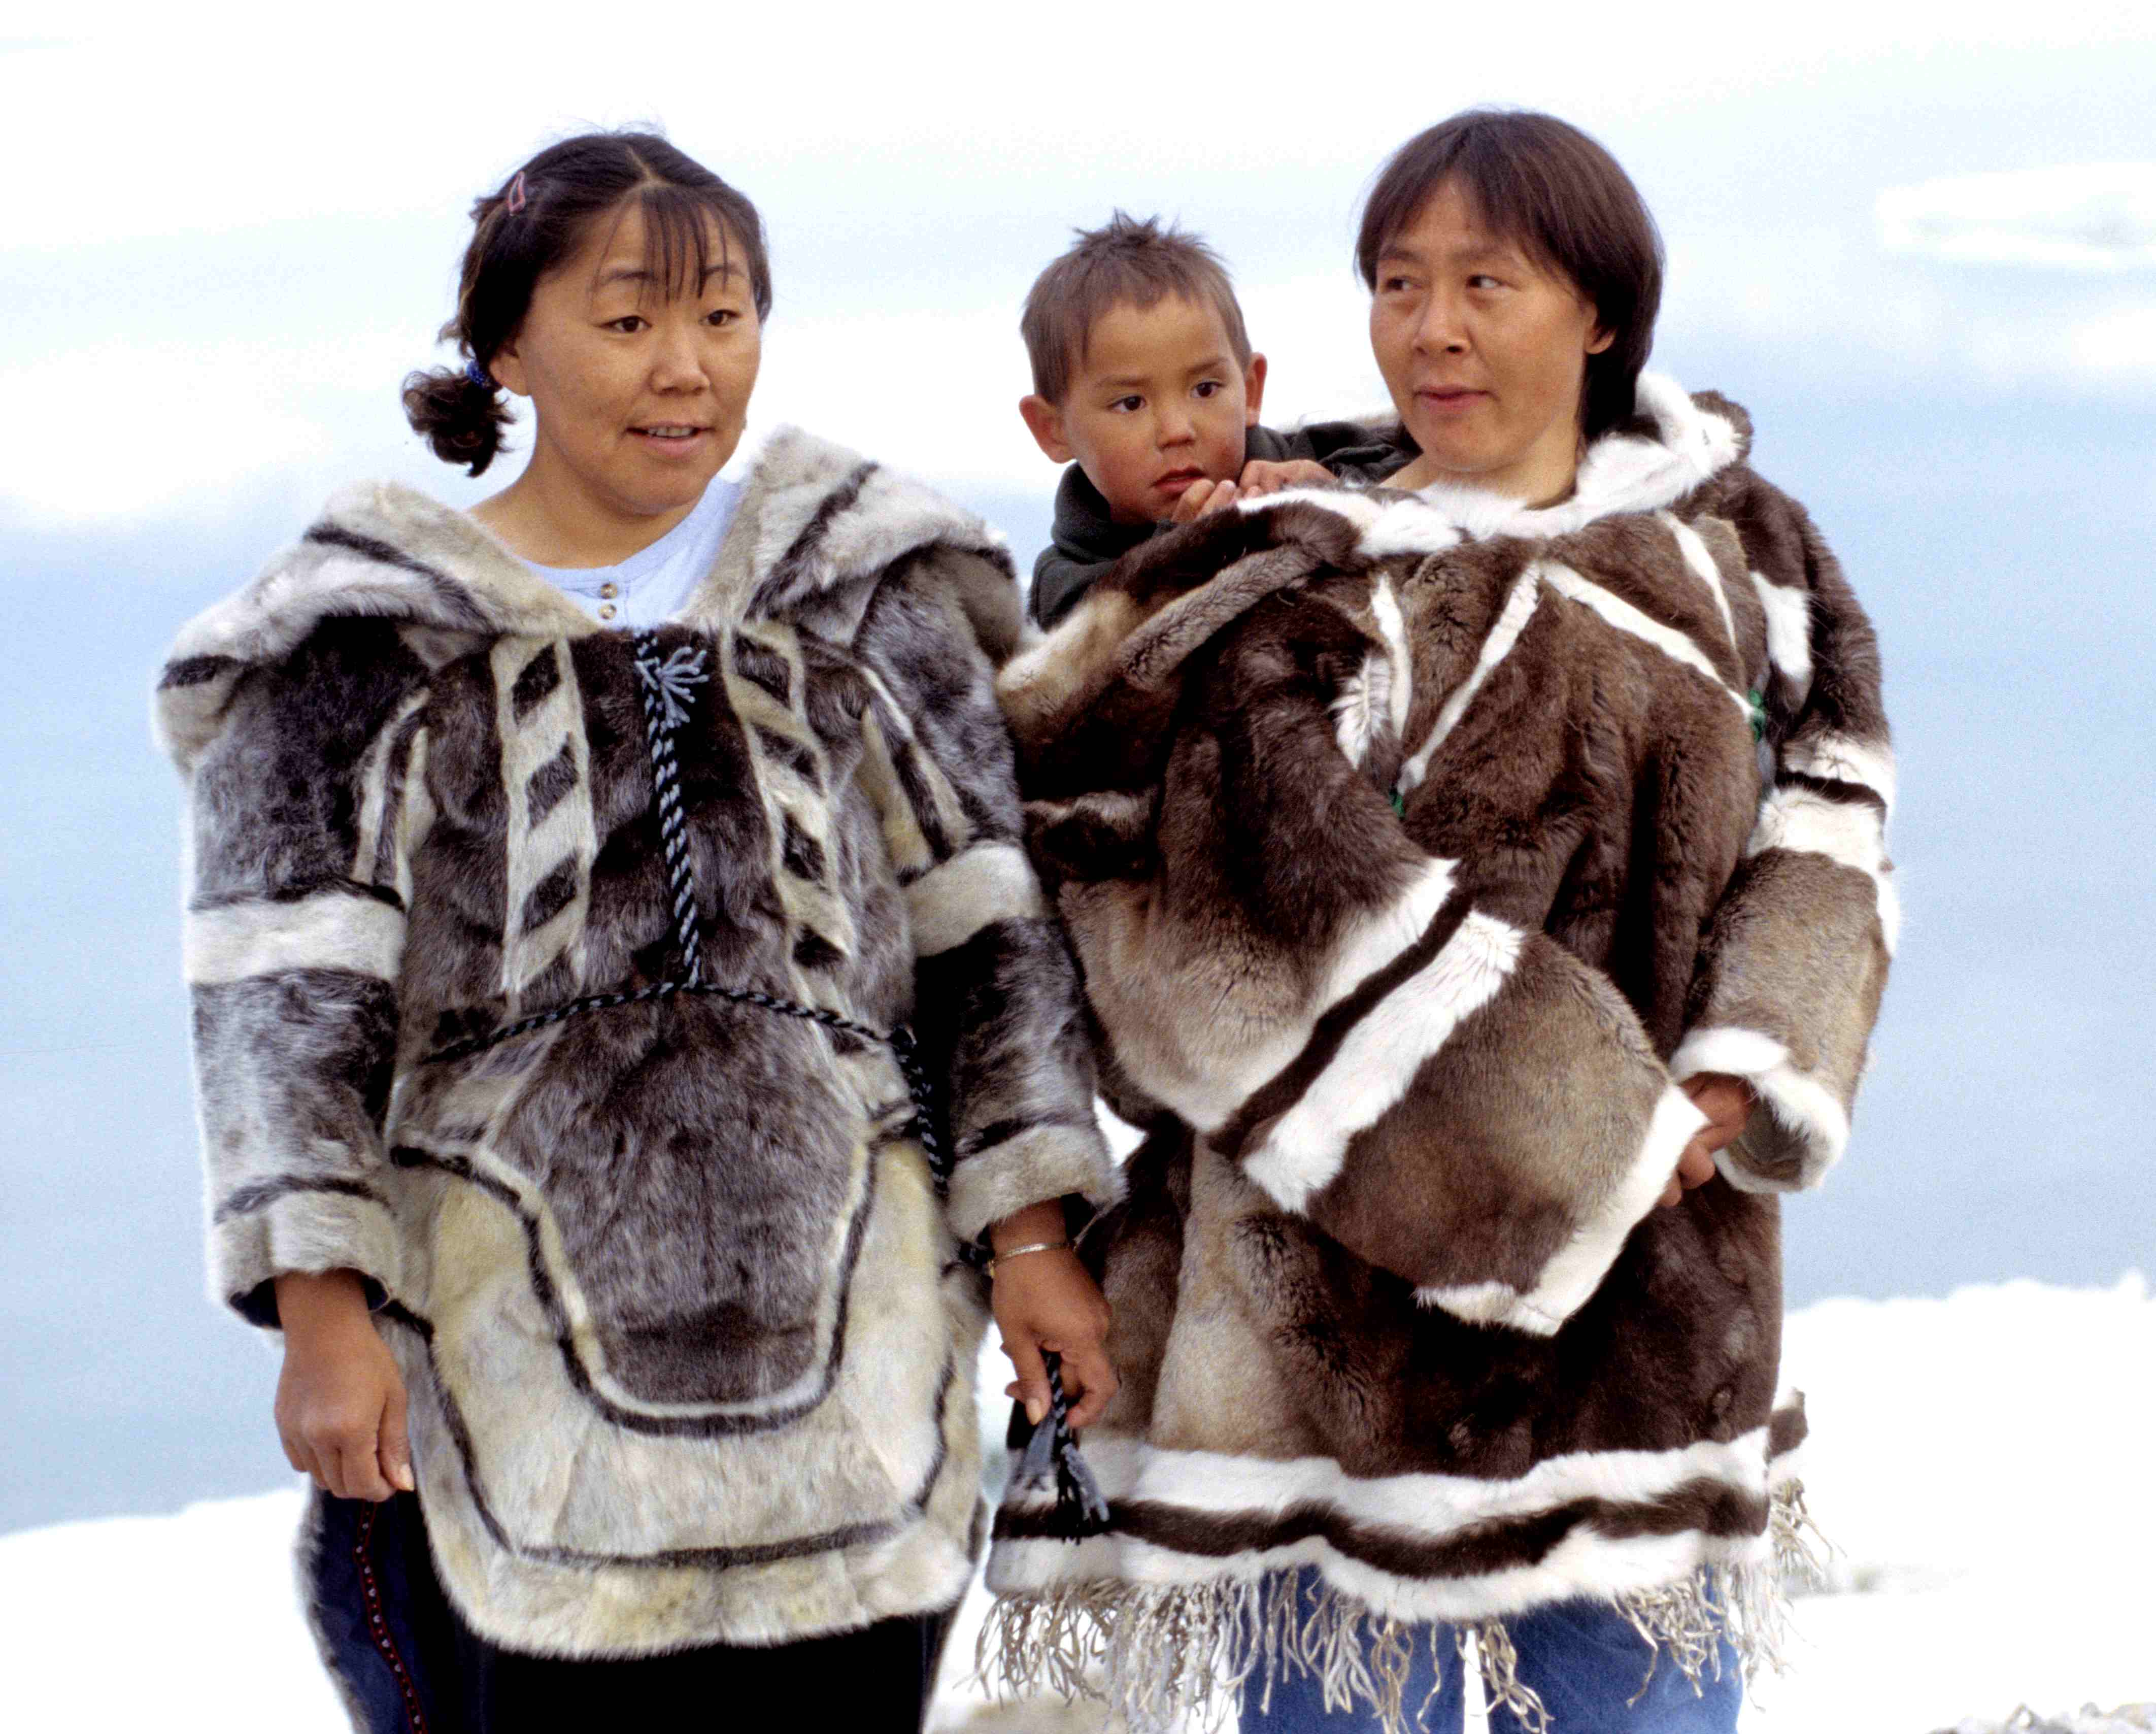 Genetic intolerance to sugar found in Inuit population in Canada